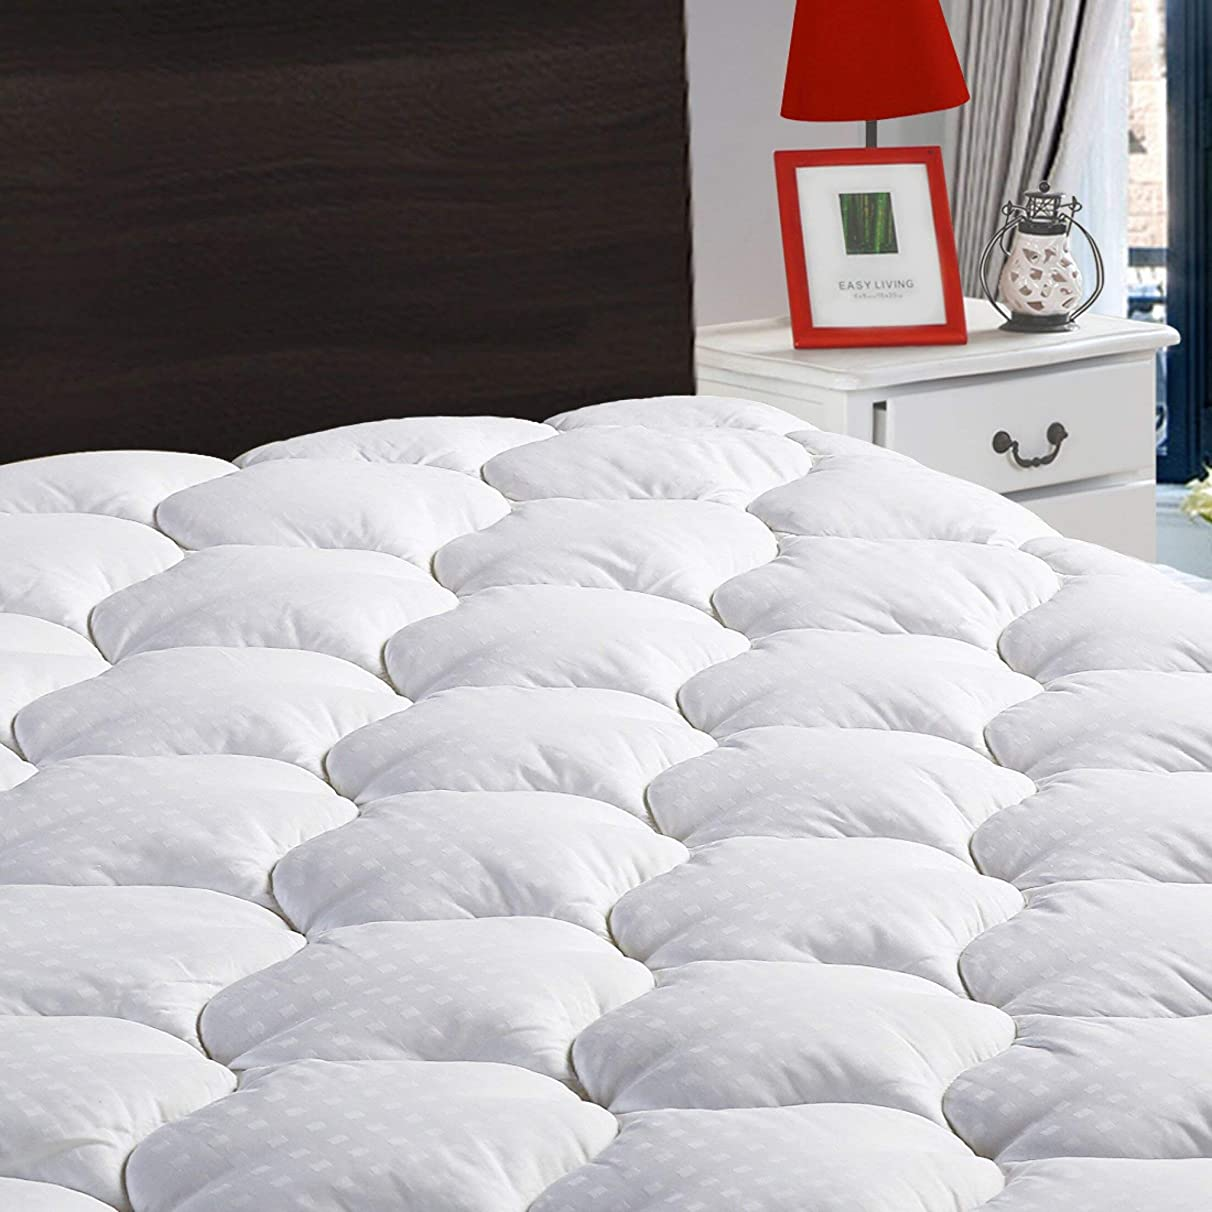 LEISURE TOWN Twin XL Mattress Pad Cover Cooling Mattress Topper Cotton Top Pillow Top with Snow Down Alternative Fill (8-21